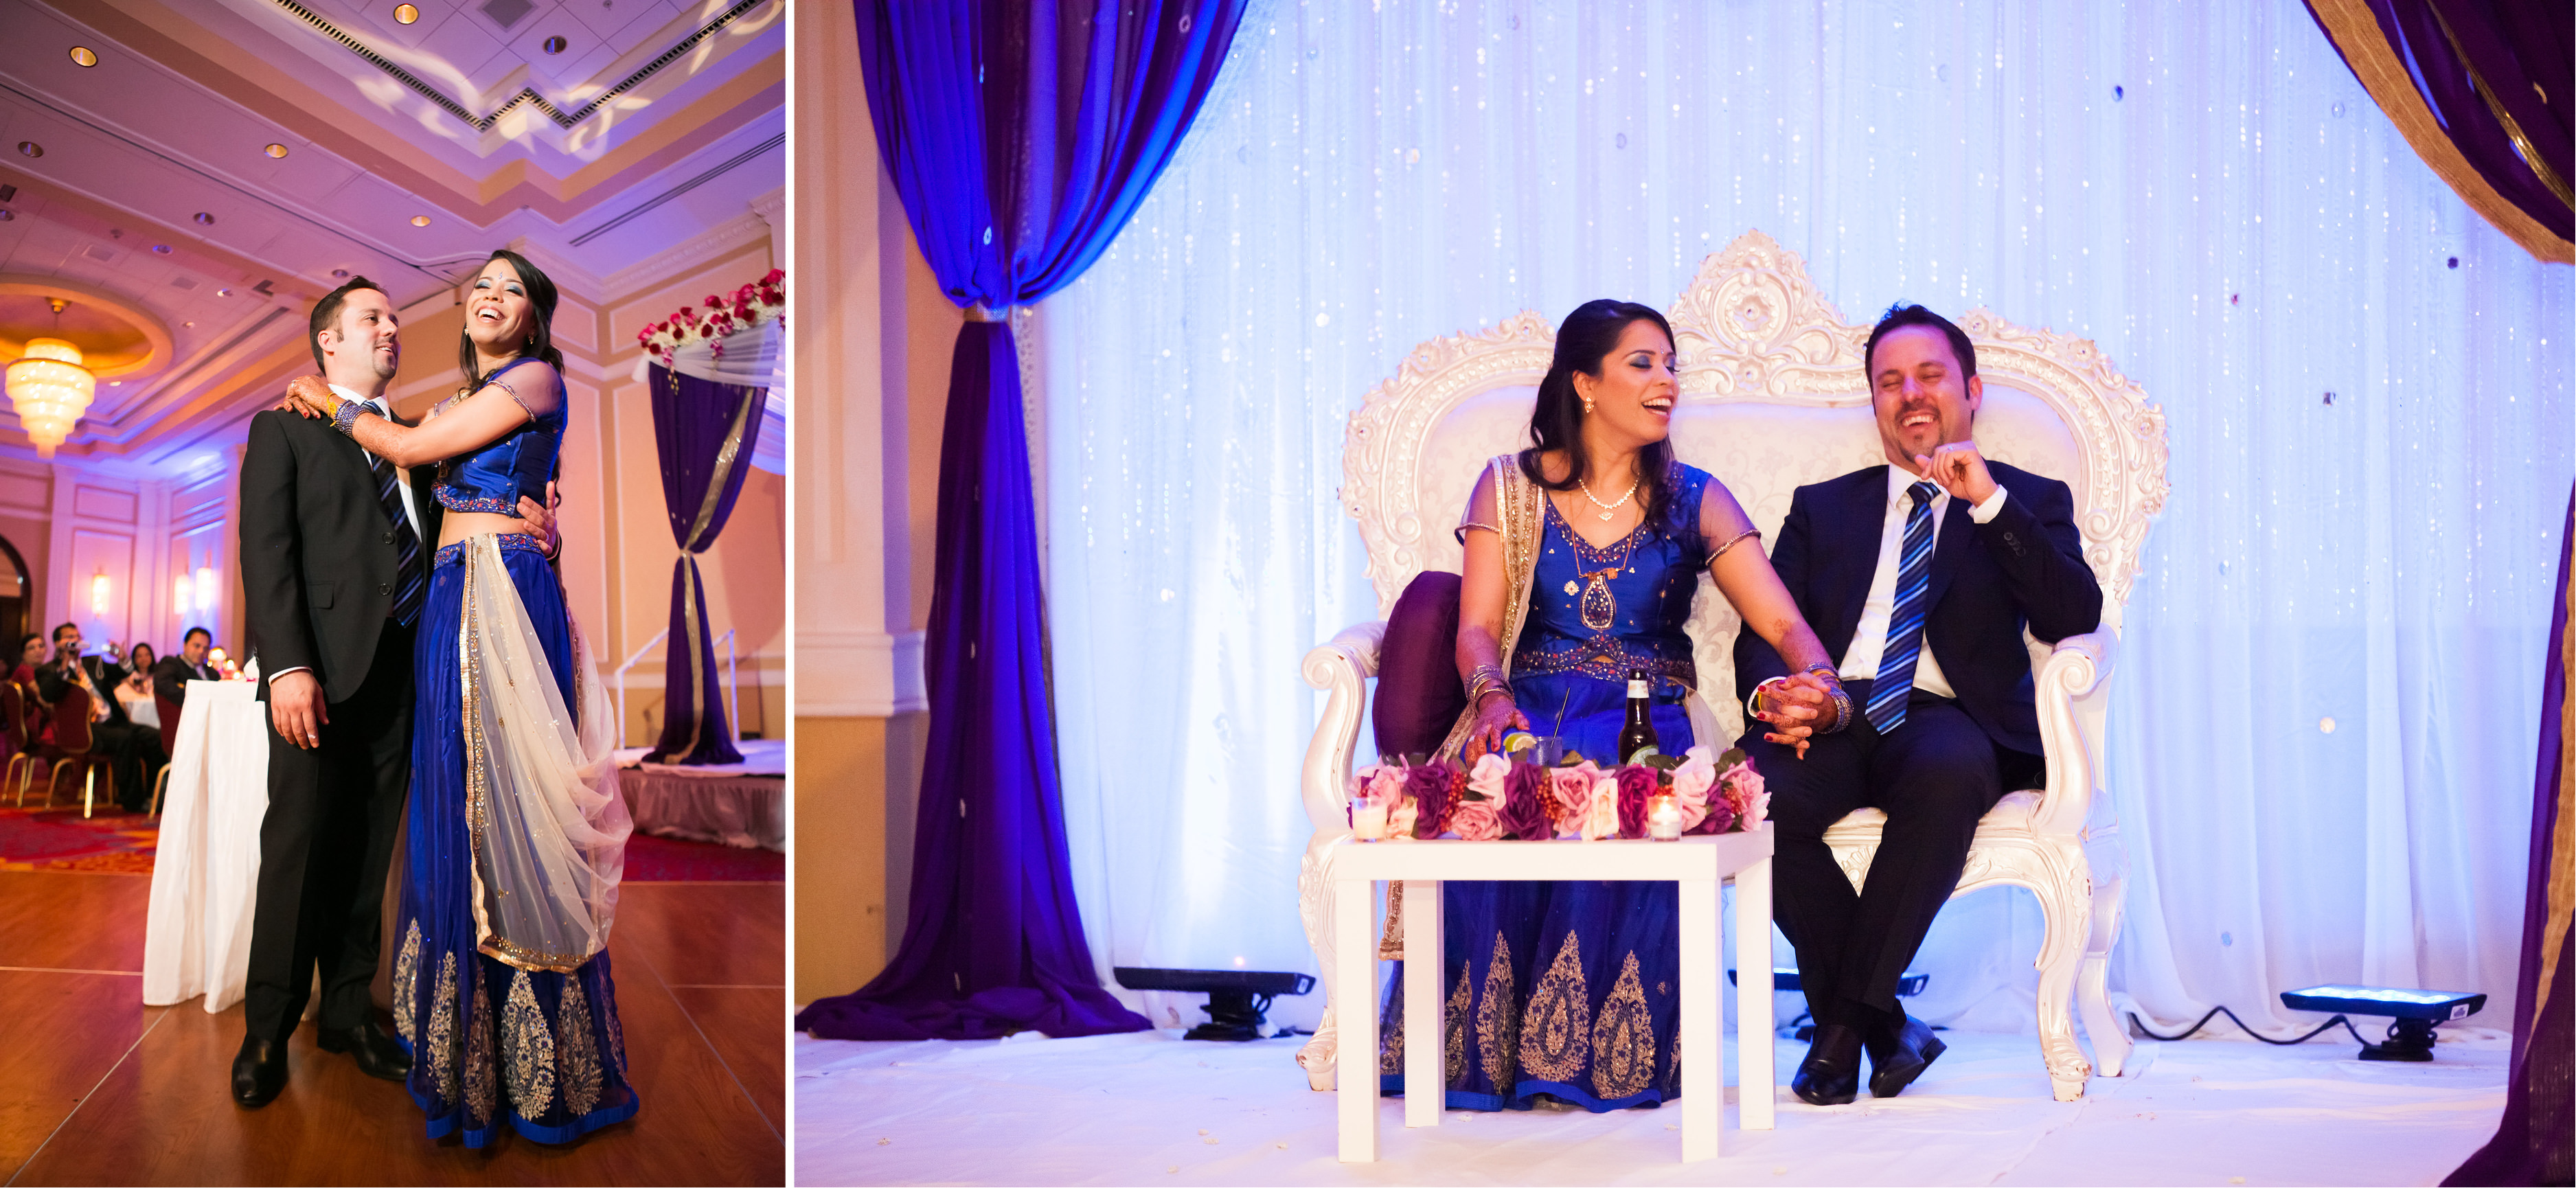 Emma_cleary_photography Indian Wedding23